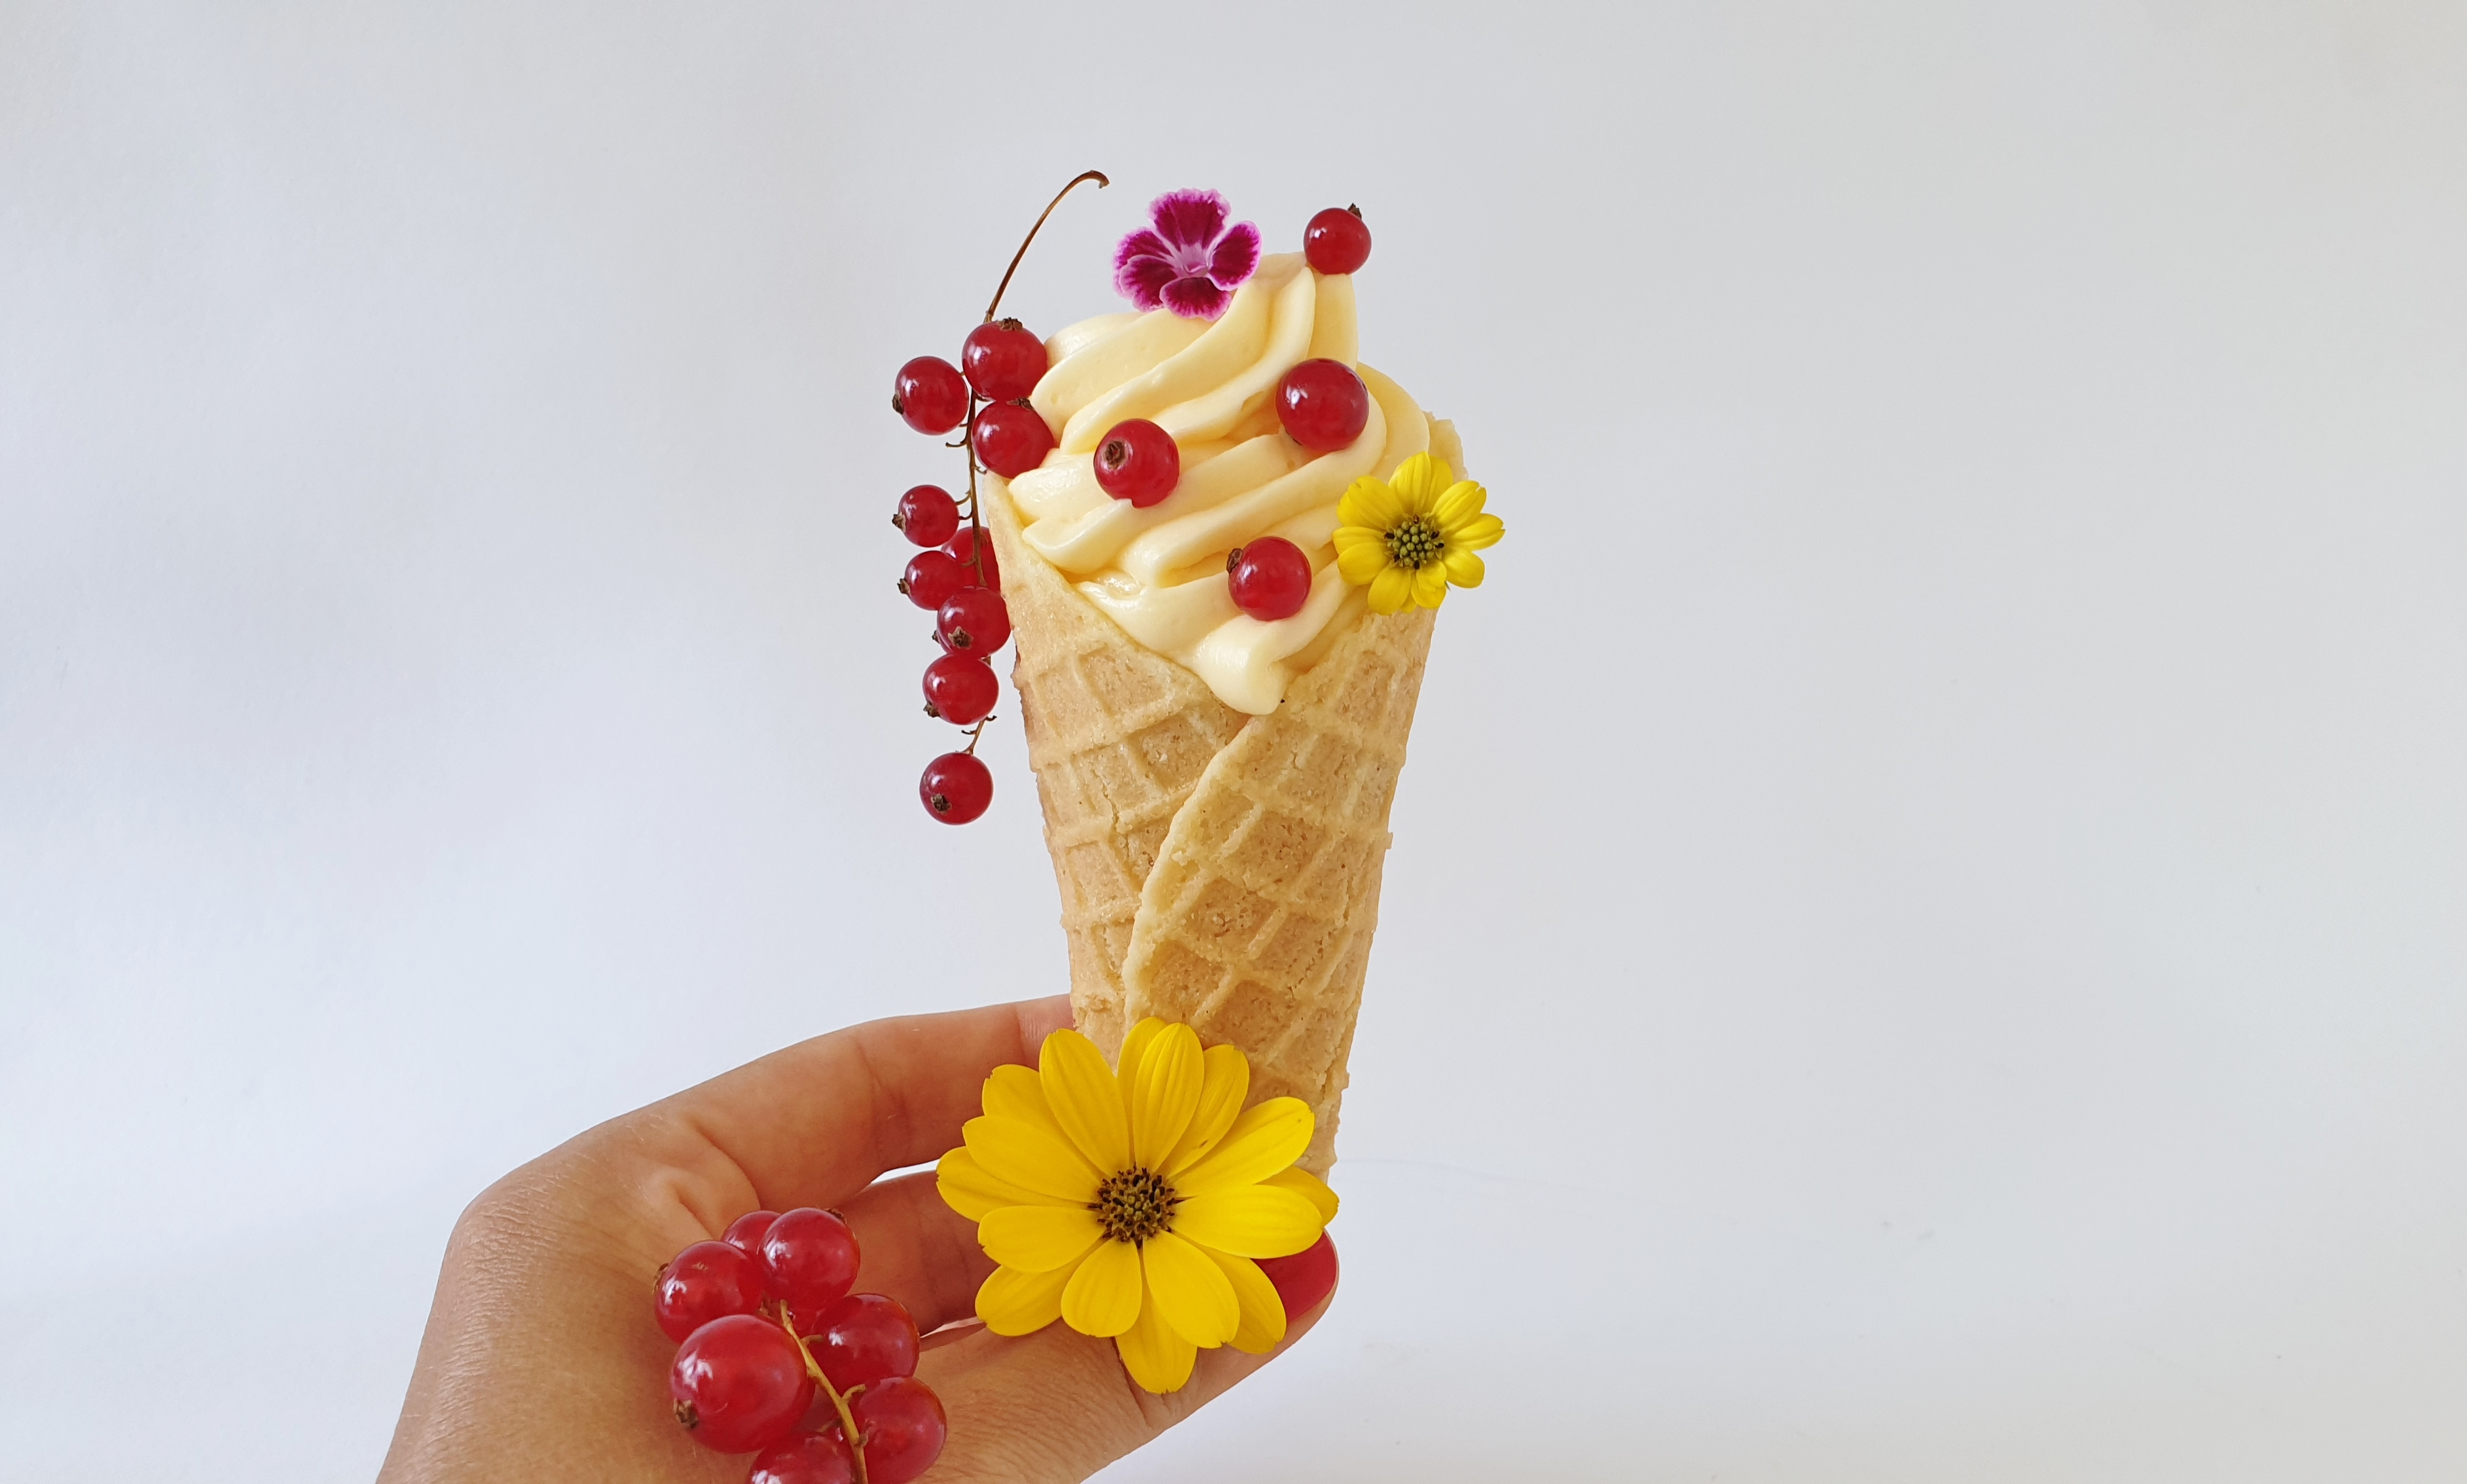 pastry cream cornet with red currants and flowers